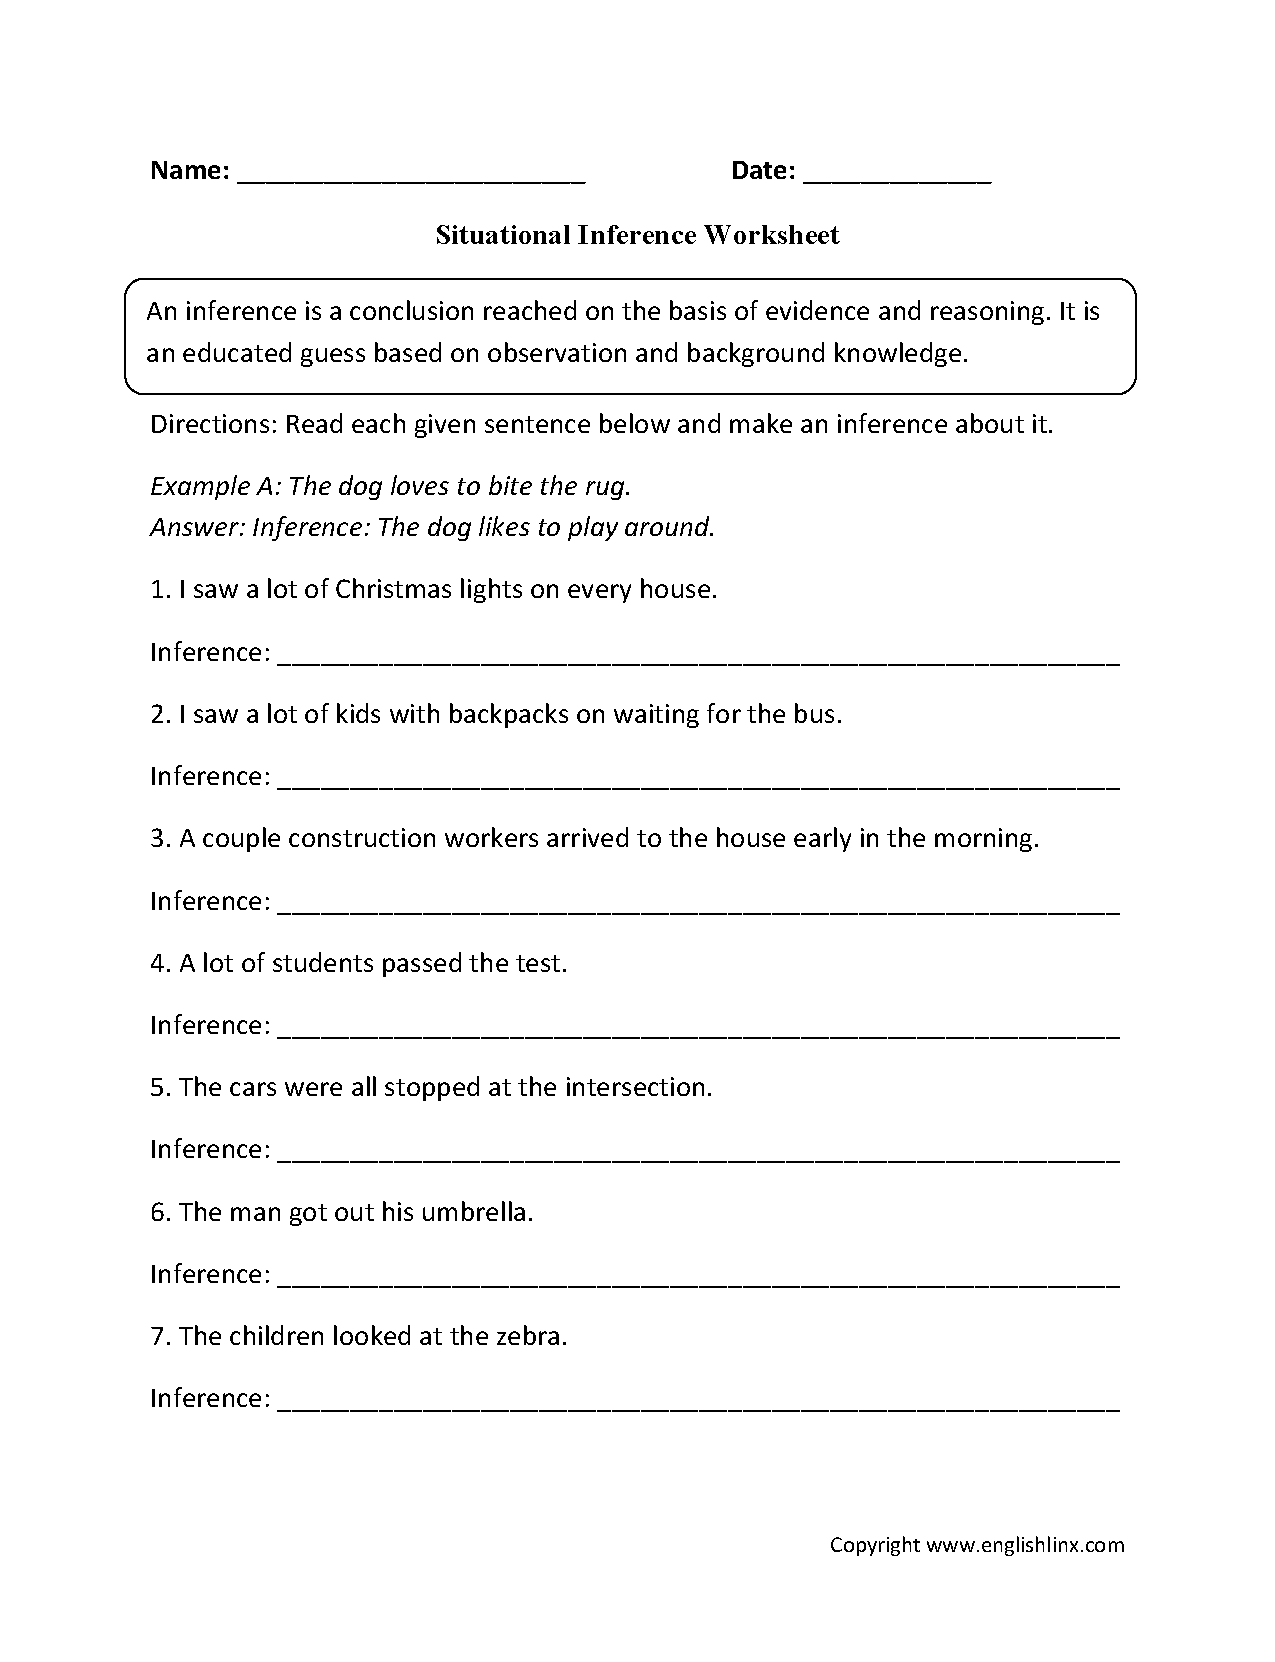 medium resolution of Situational Inference Worksheets   Reading comprehension worksheets